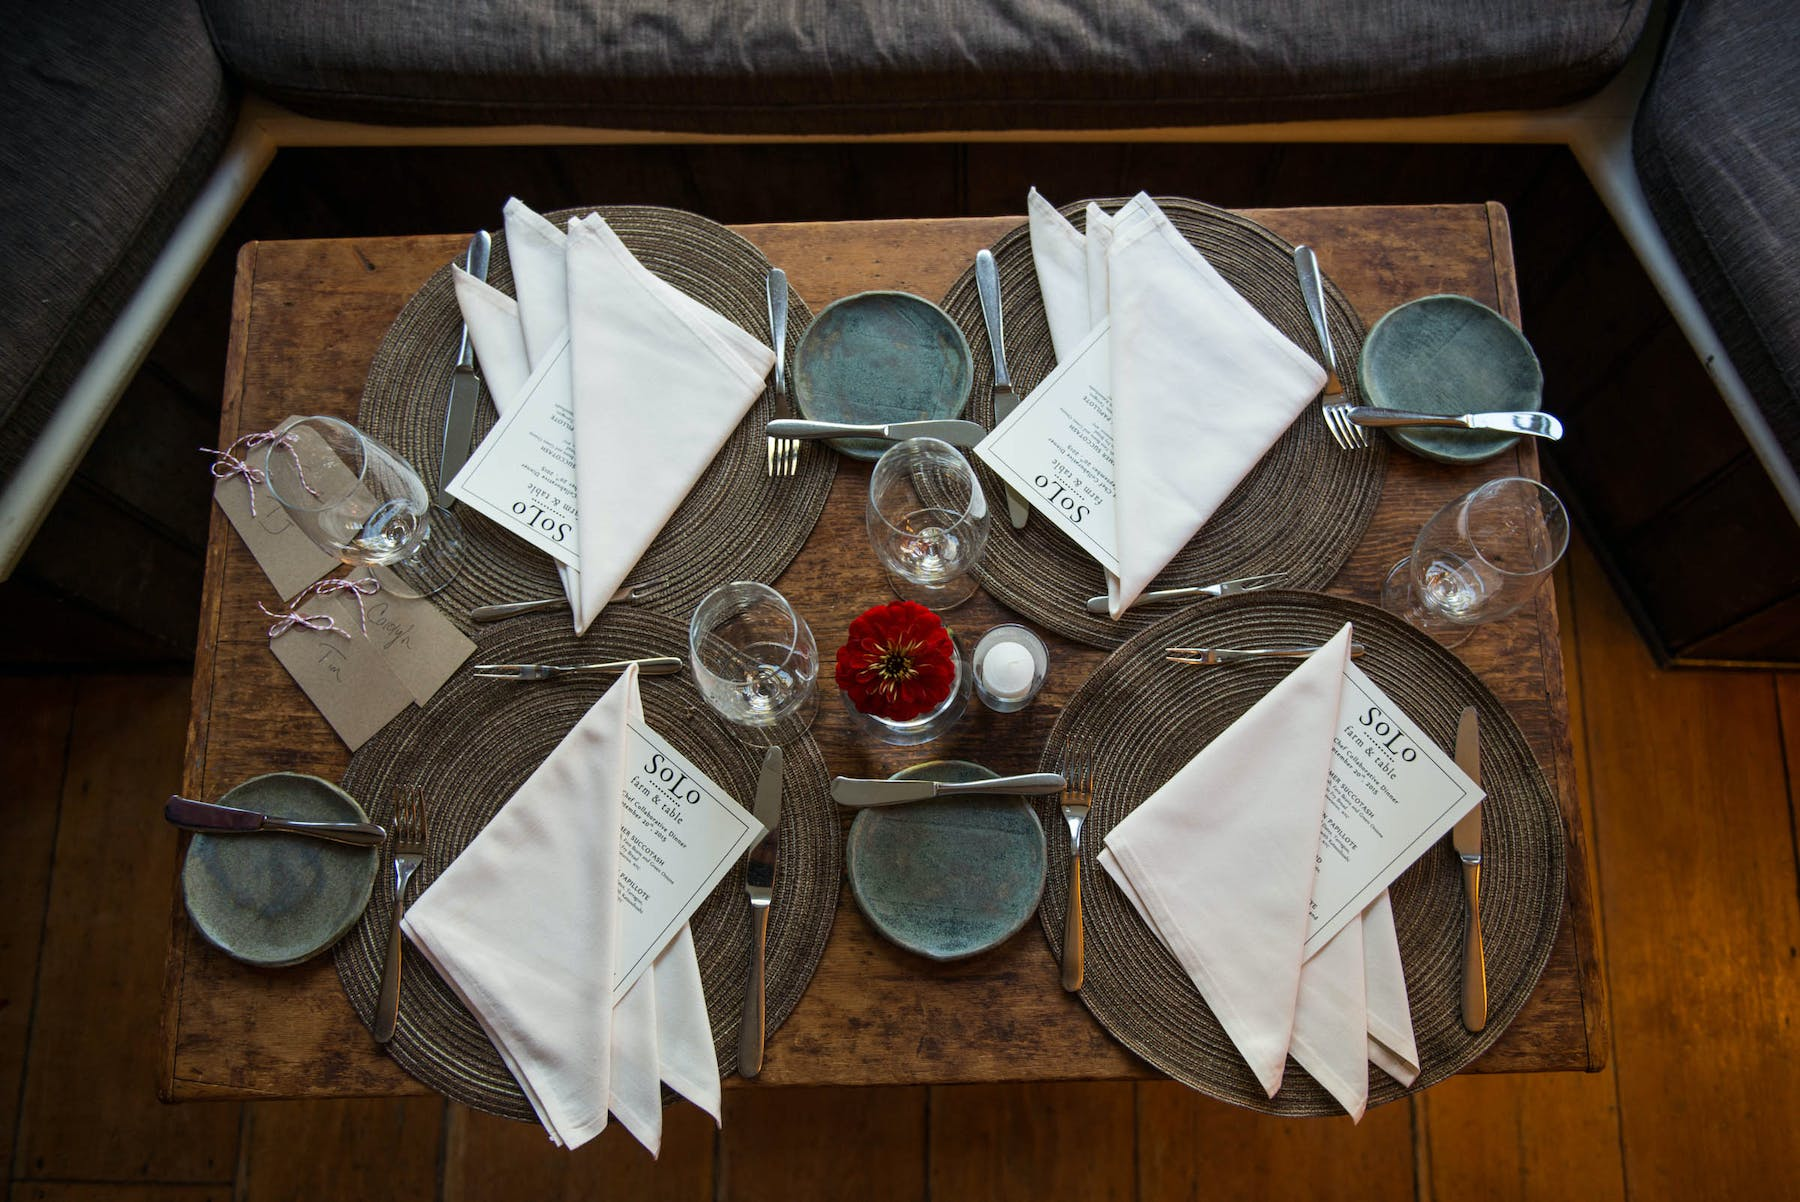 Napkins and cutlery on top of a table